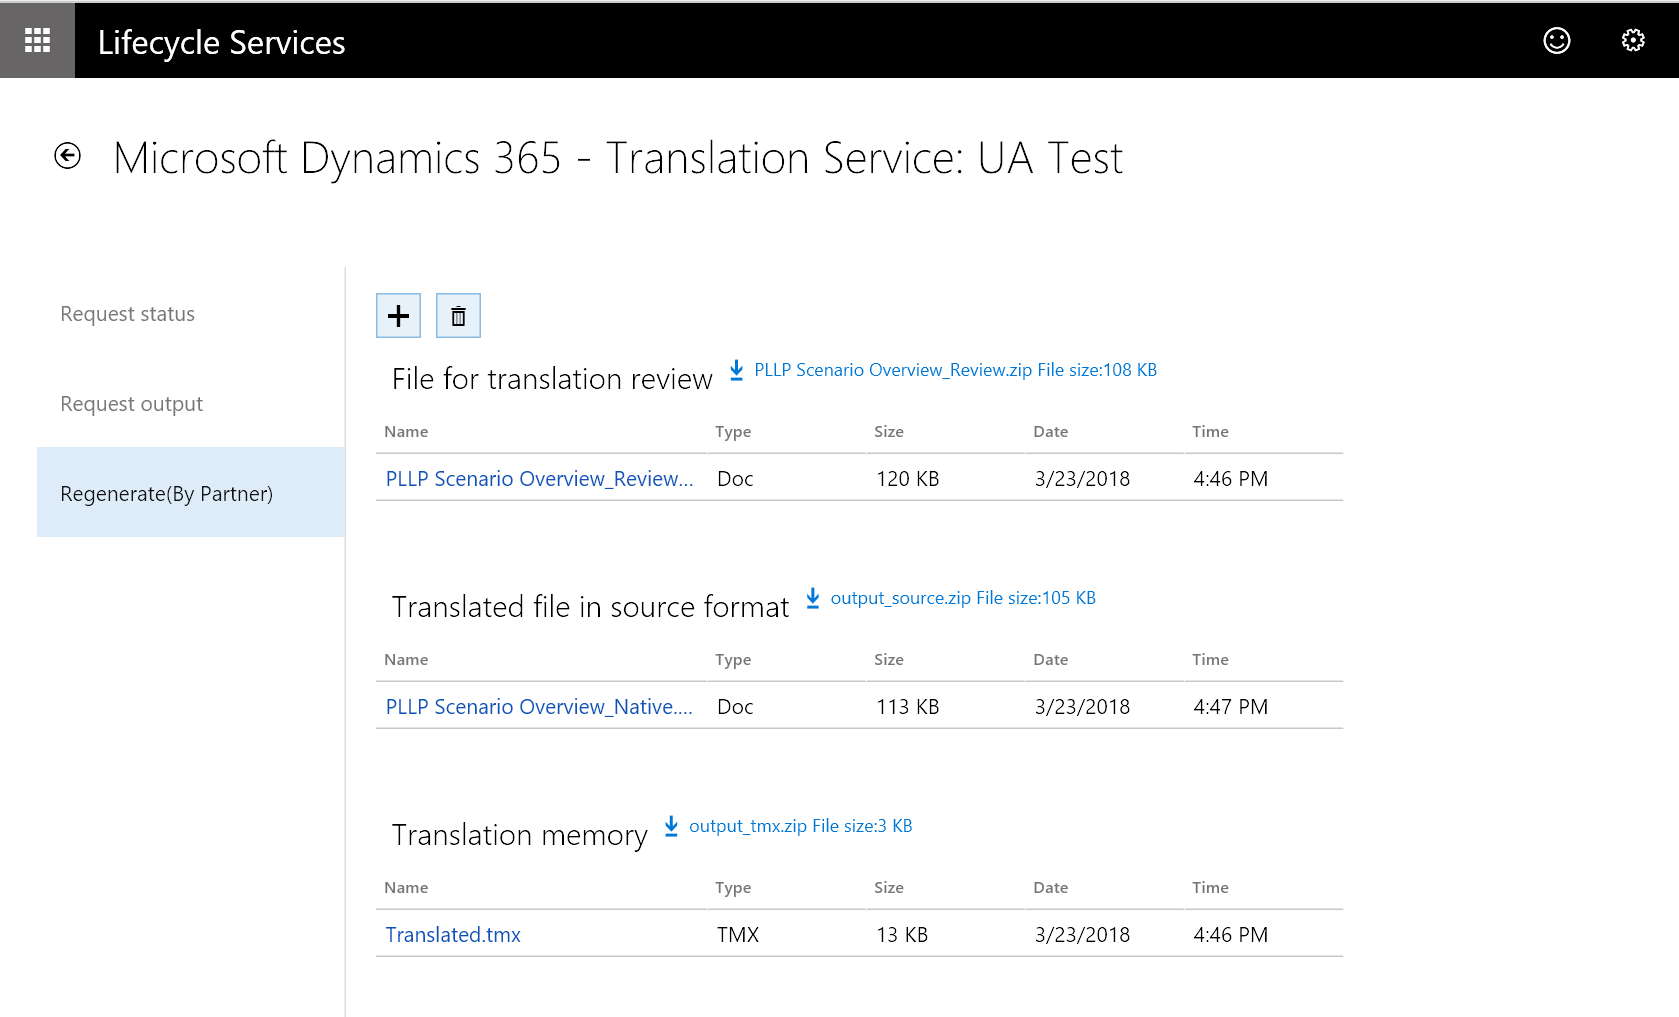 Microsoft Dynamics 365 Translation Service - Documentation file ...